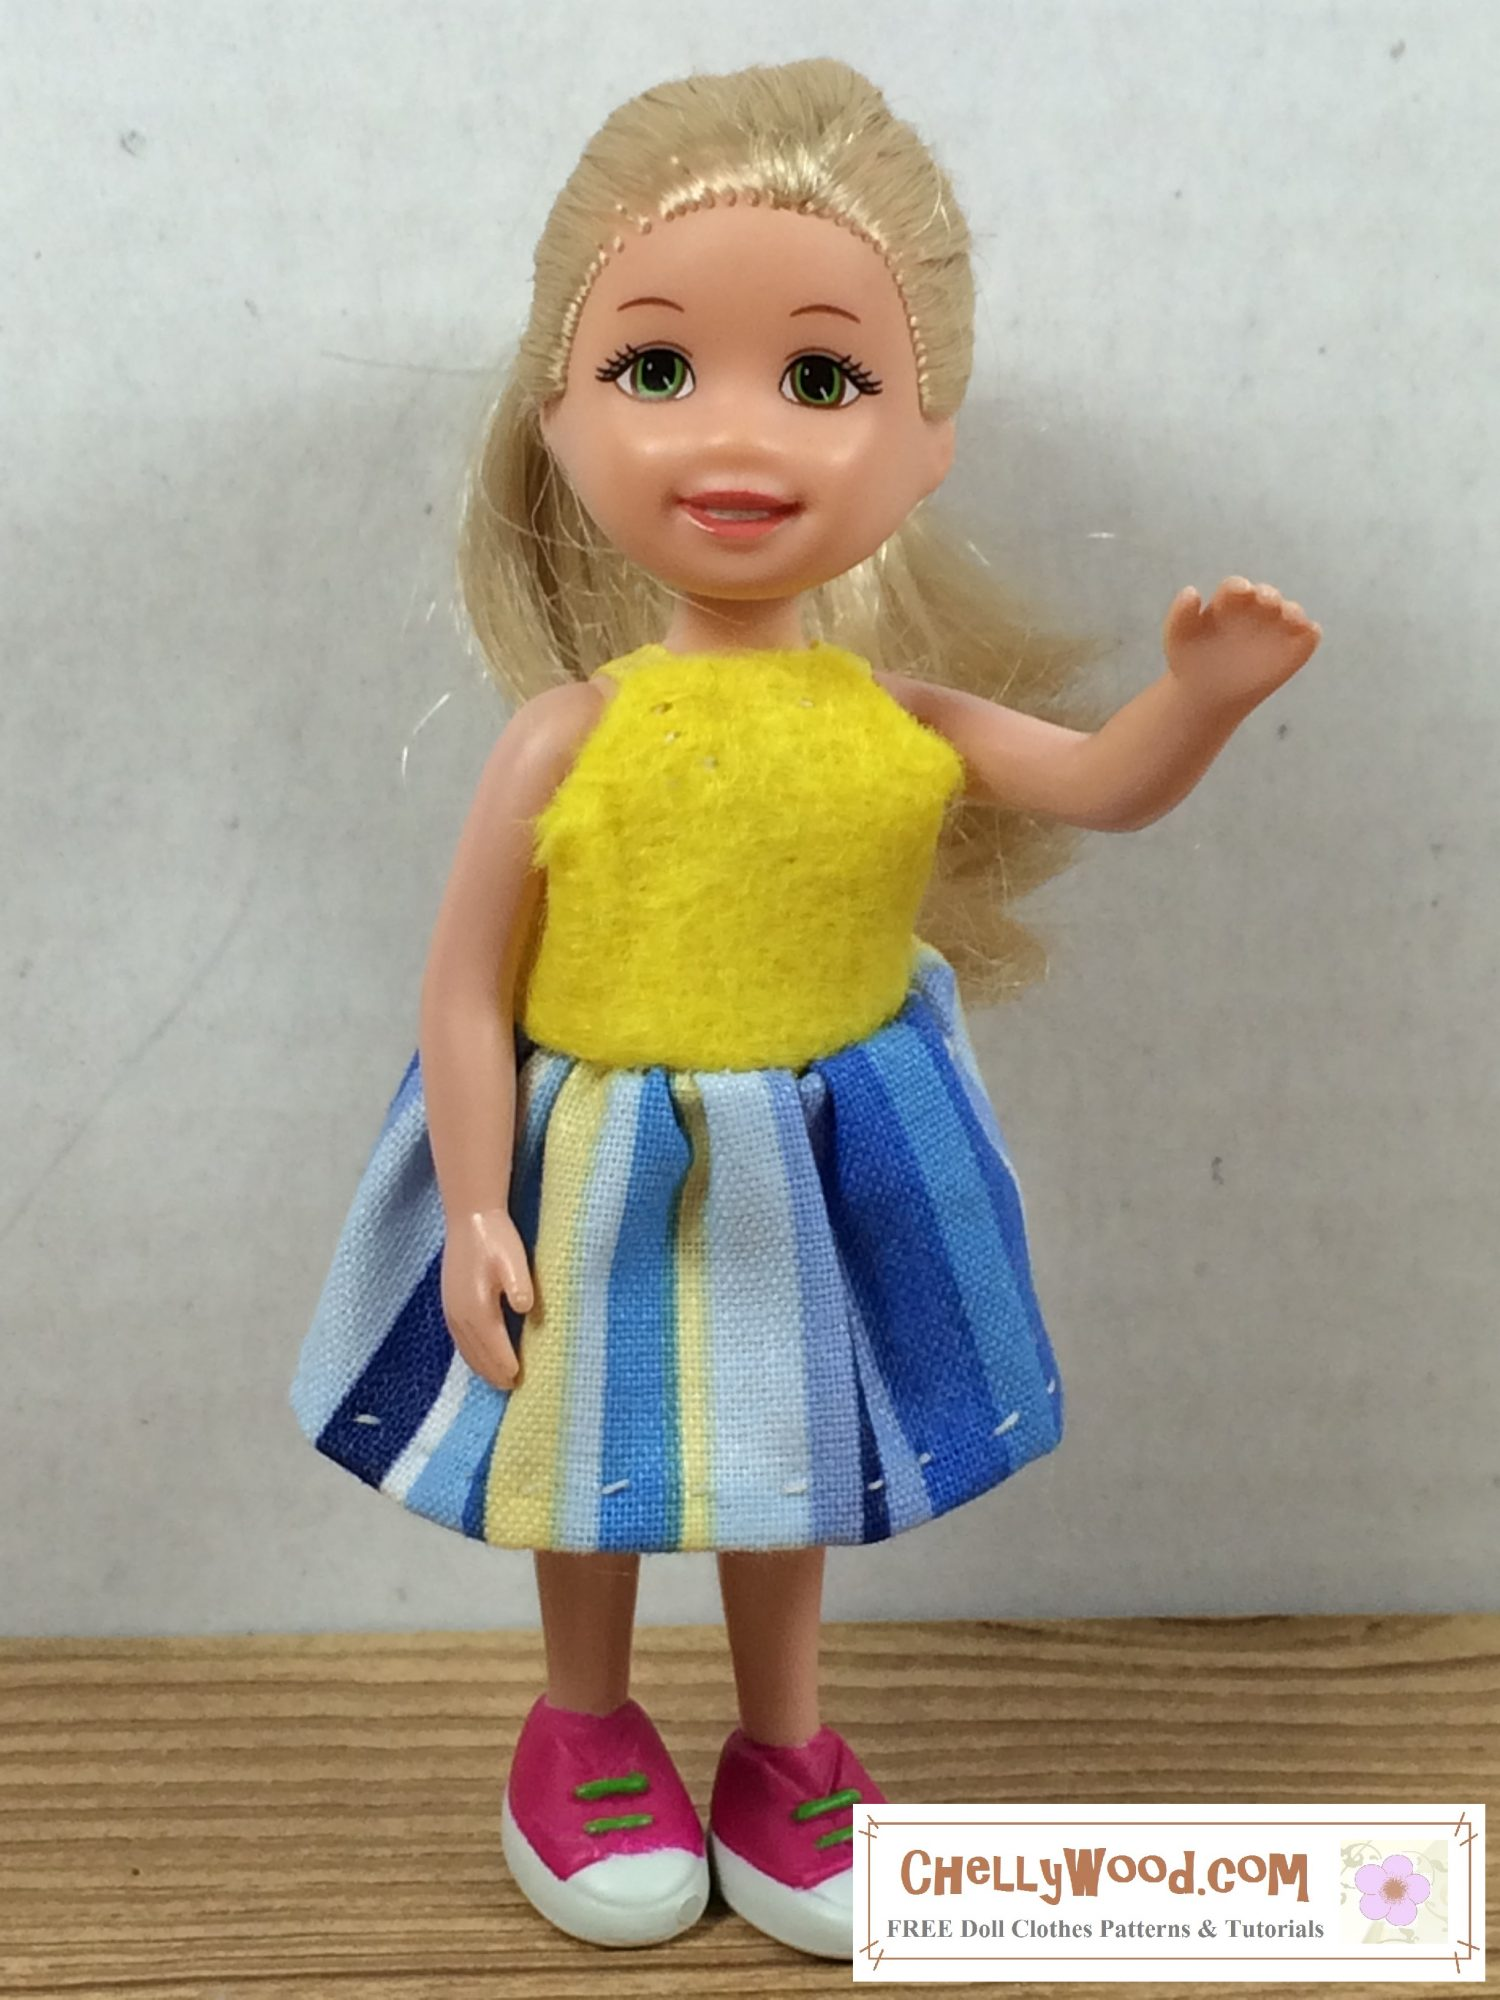 In this photograph a tiny Kelly doll raises one hand as if to wave. She wears a teeny-tiny sun dress made of yellow felt (for the bodice) and blue and yellow striped cotton (for the gathered skirt). Tiny yellow ribbons form shoulder straps.